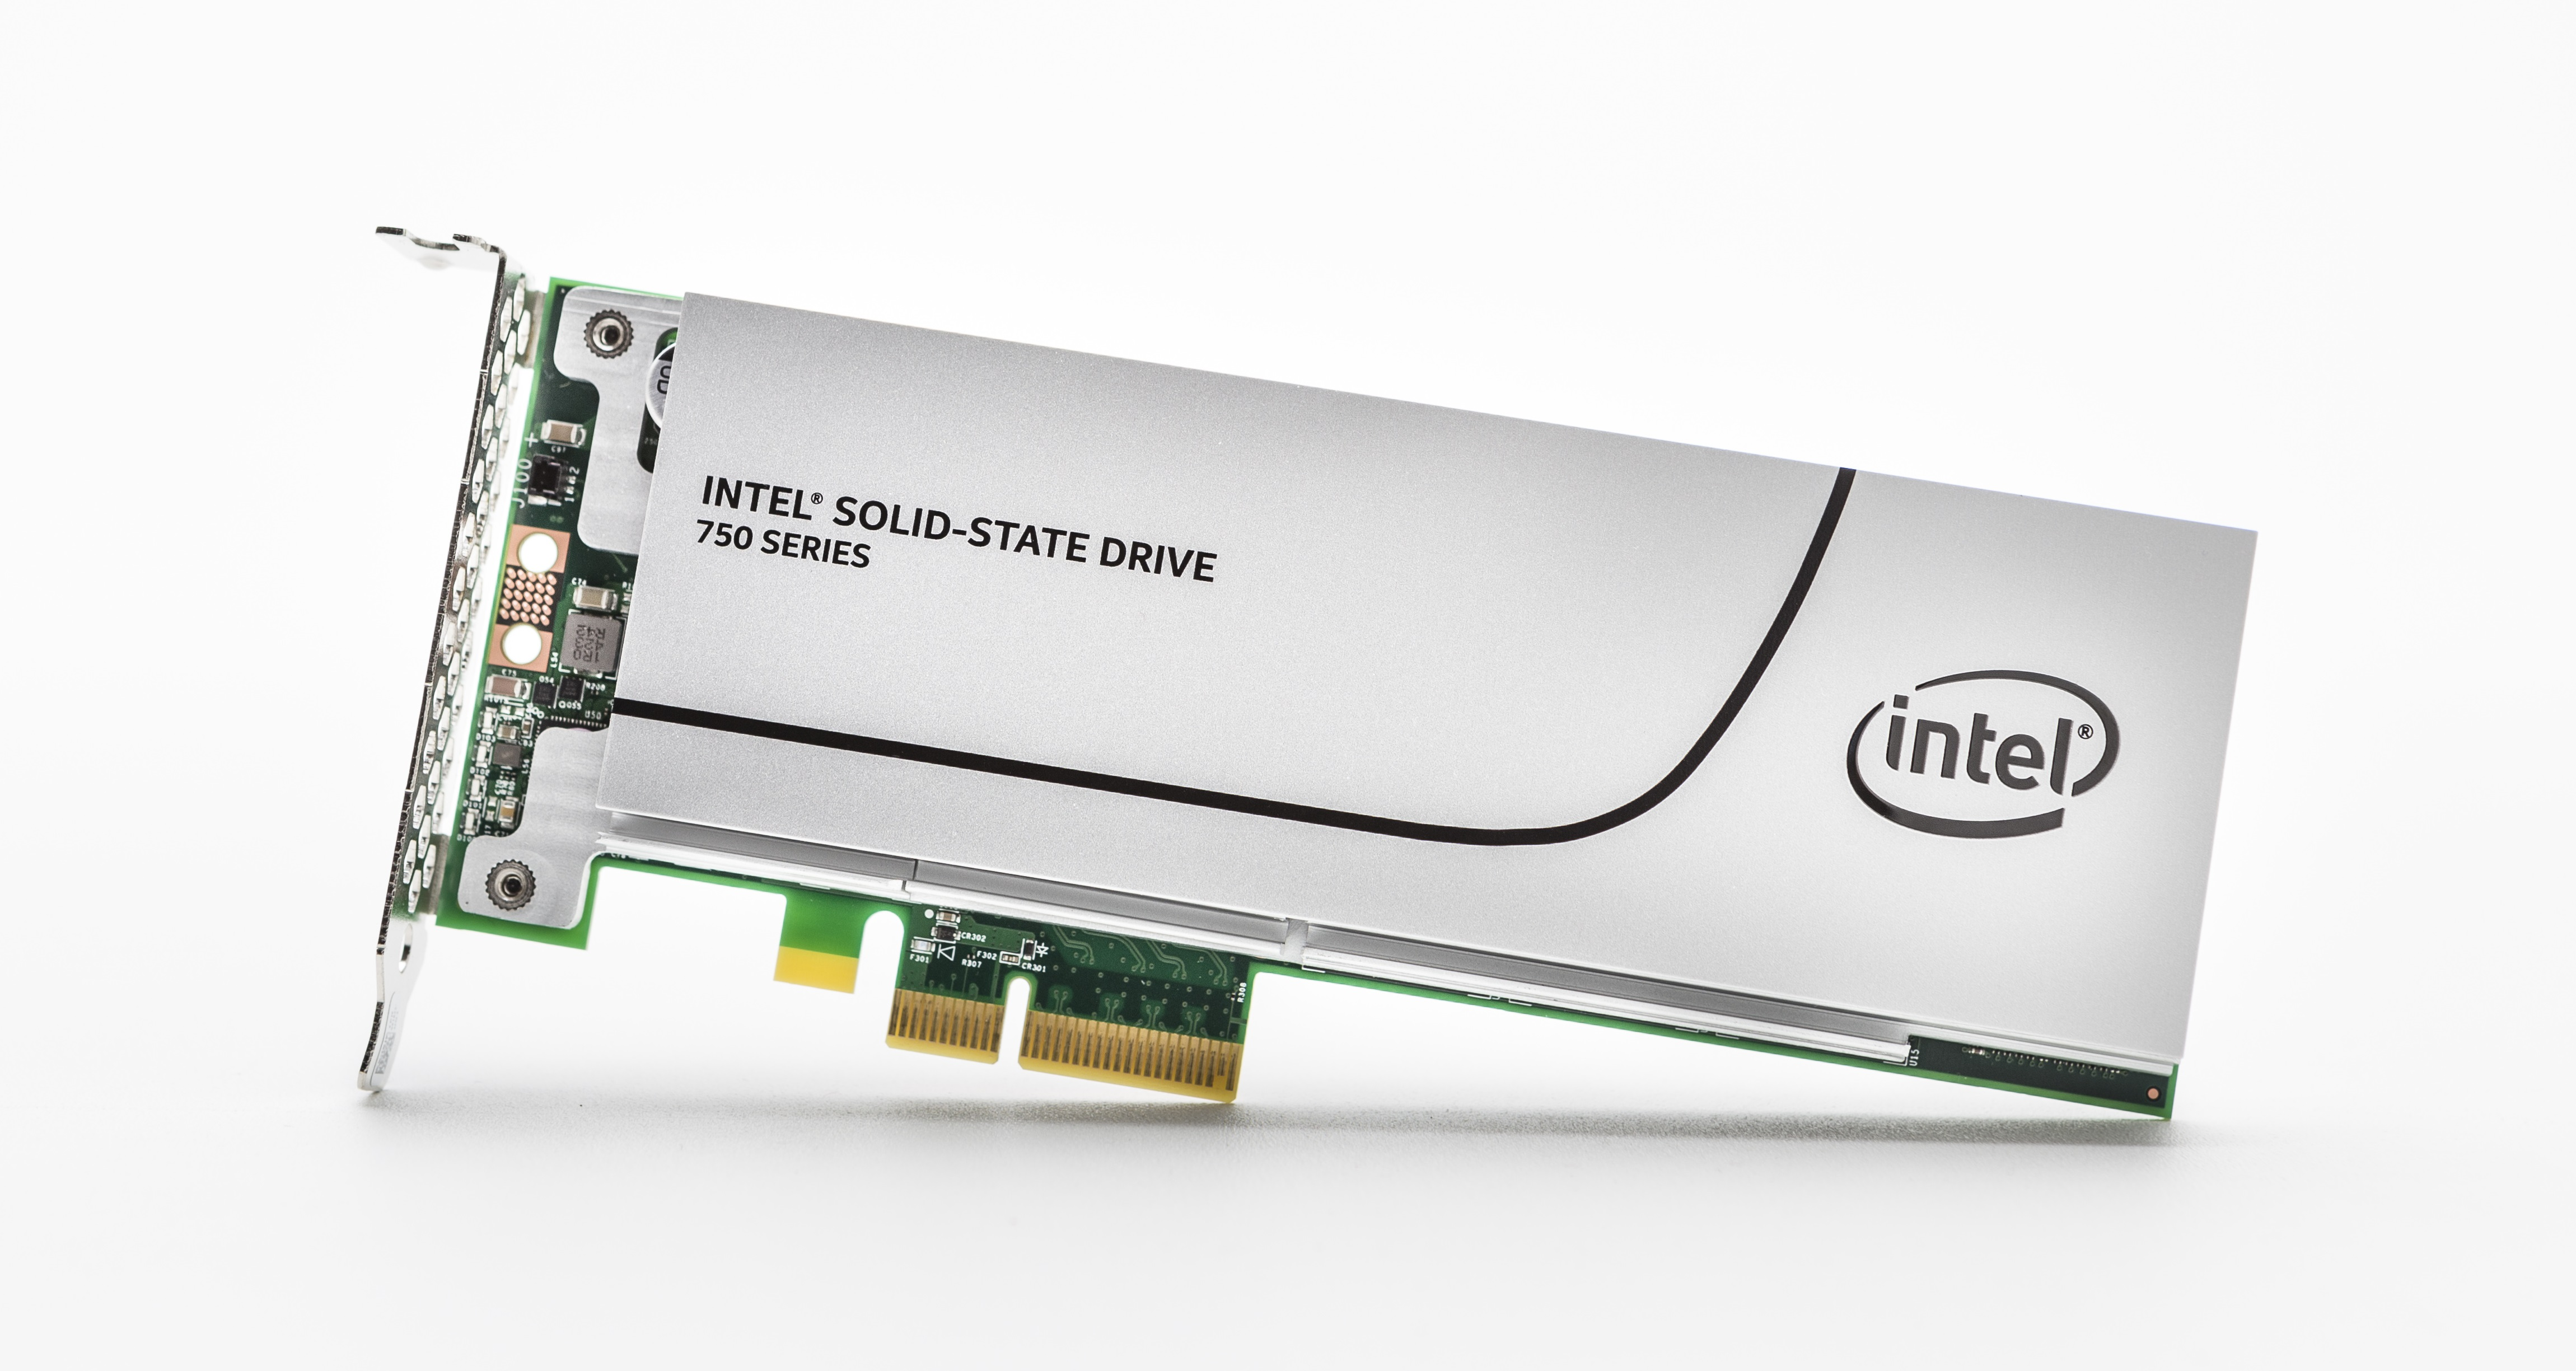 INTEL SSD 900 FAMILY DRIVERS FOR WINDOWS DOWNLOAD